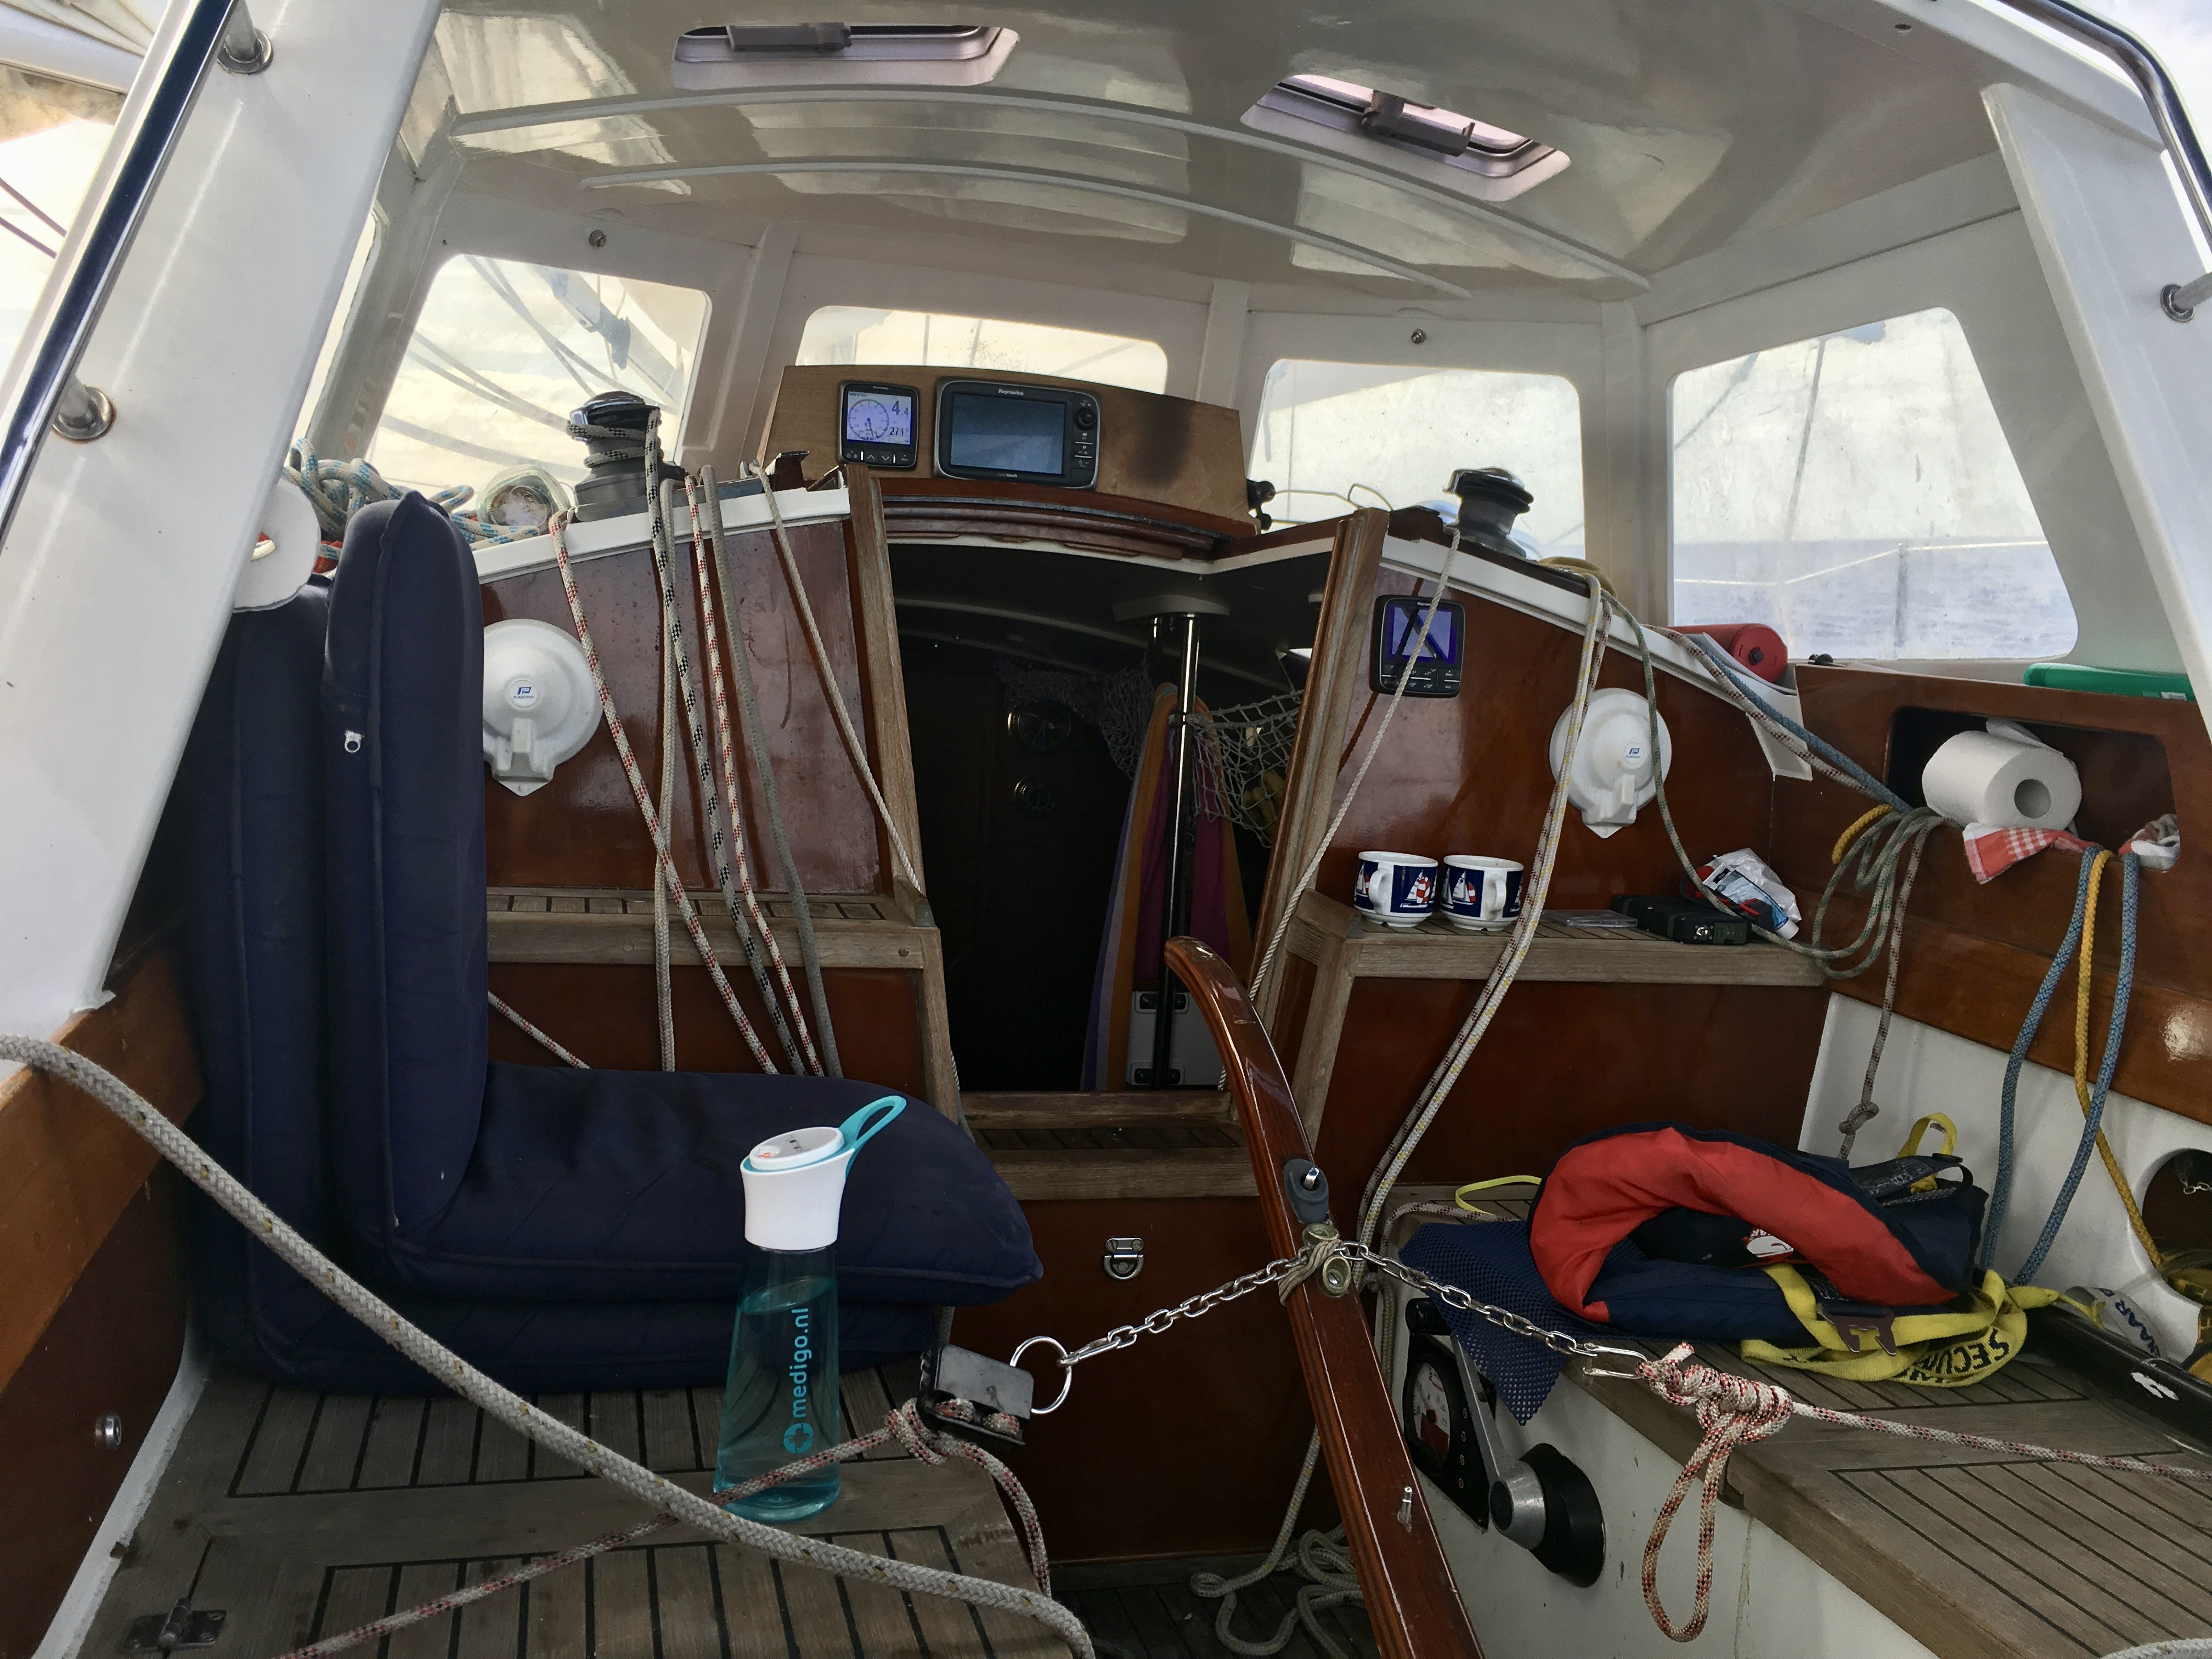 The inside of a sail boat.